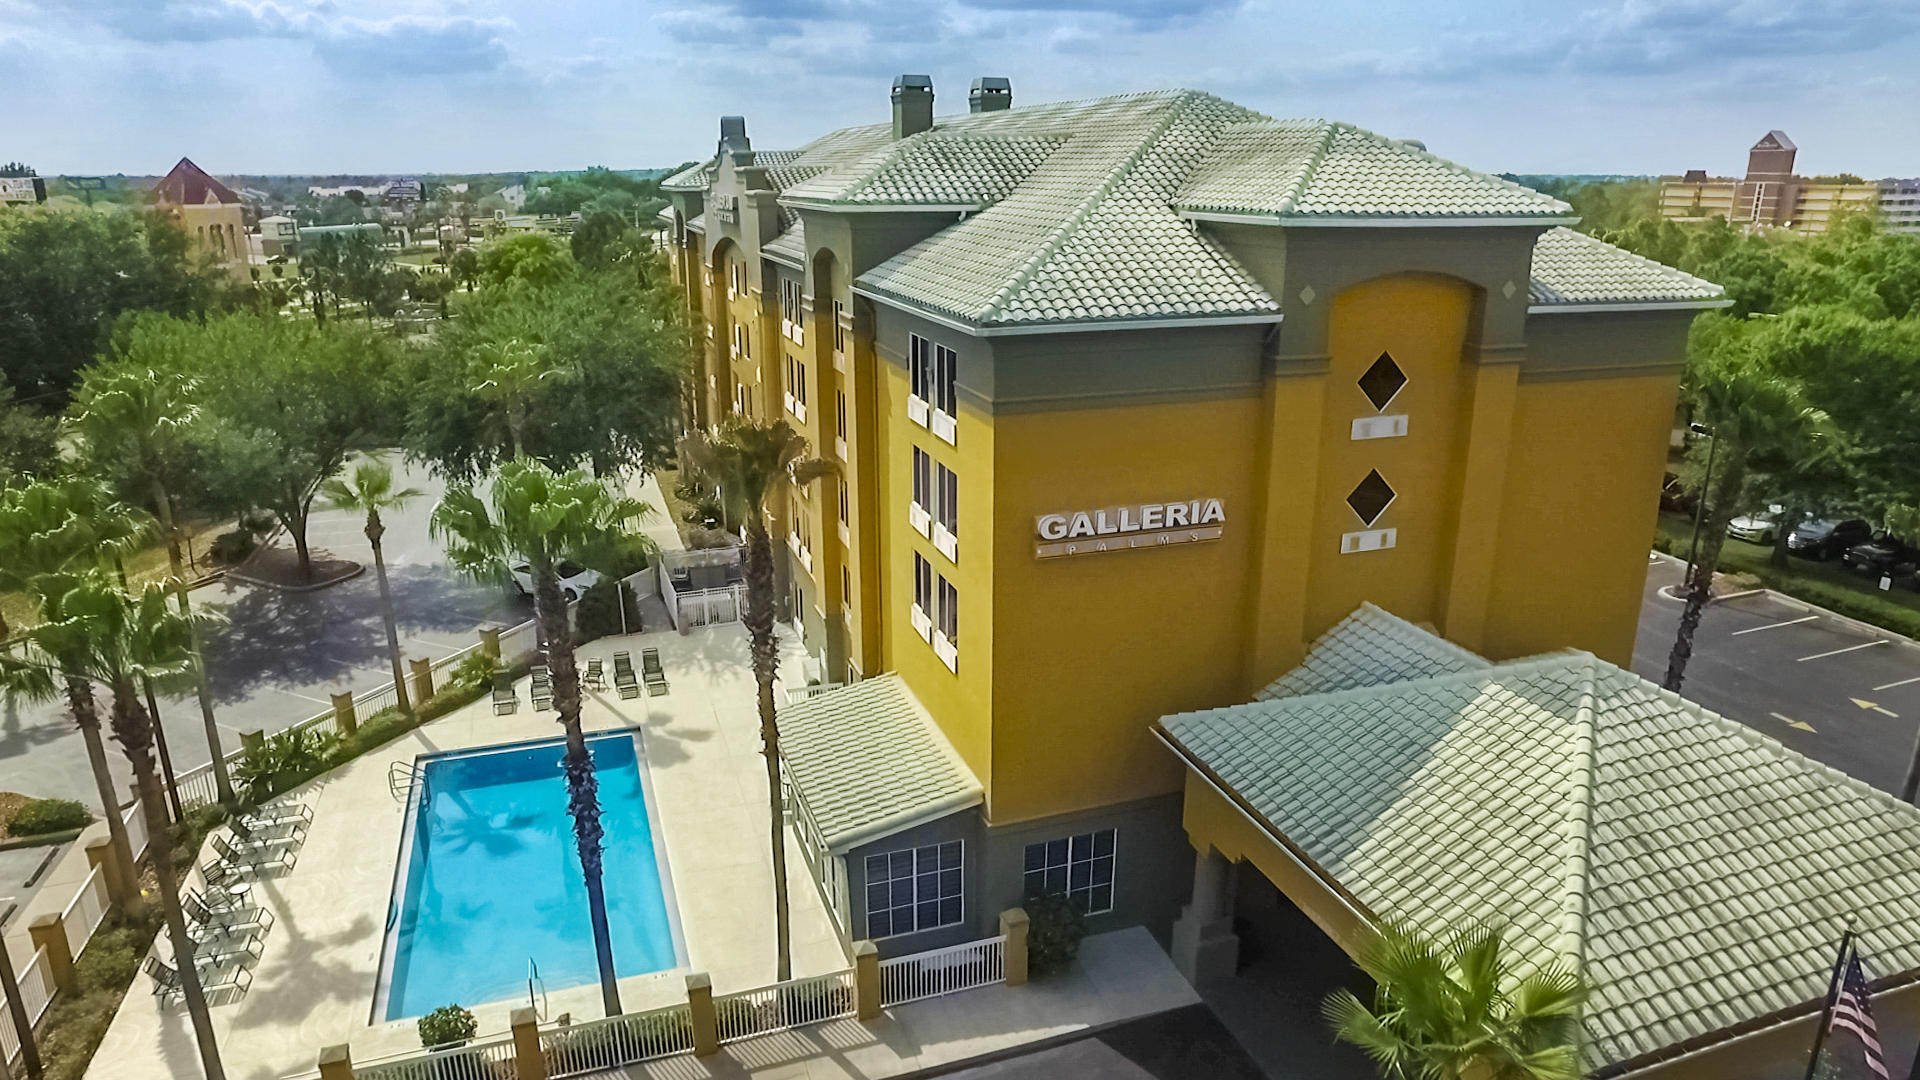 Aerial view of hotel and outdoor pool.